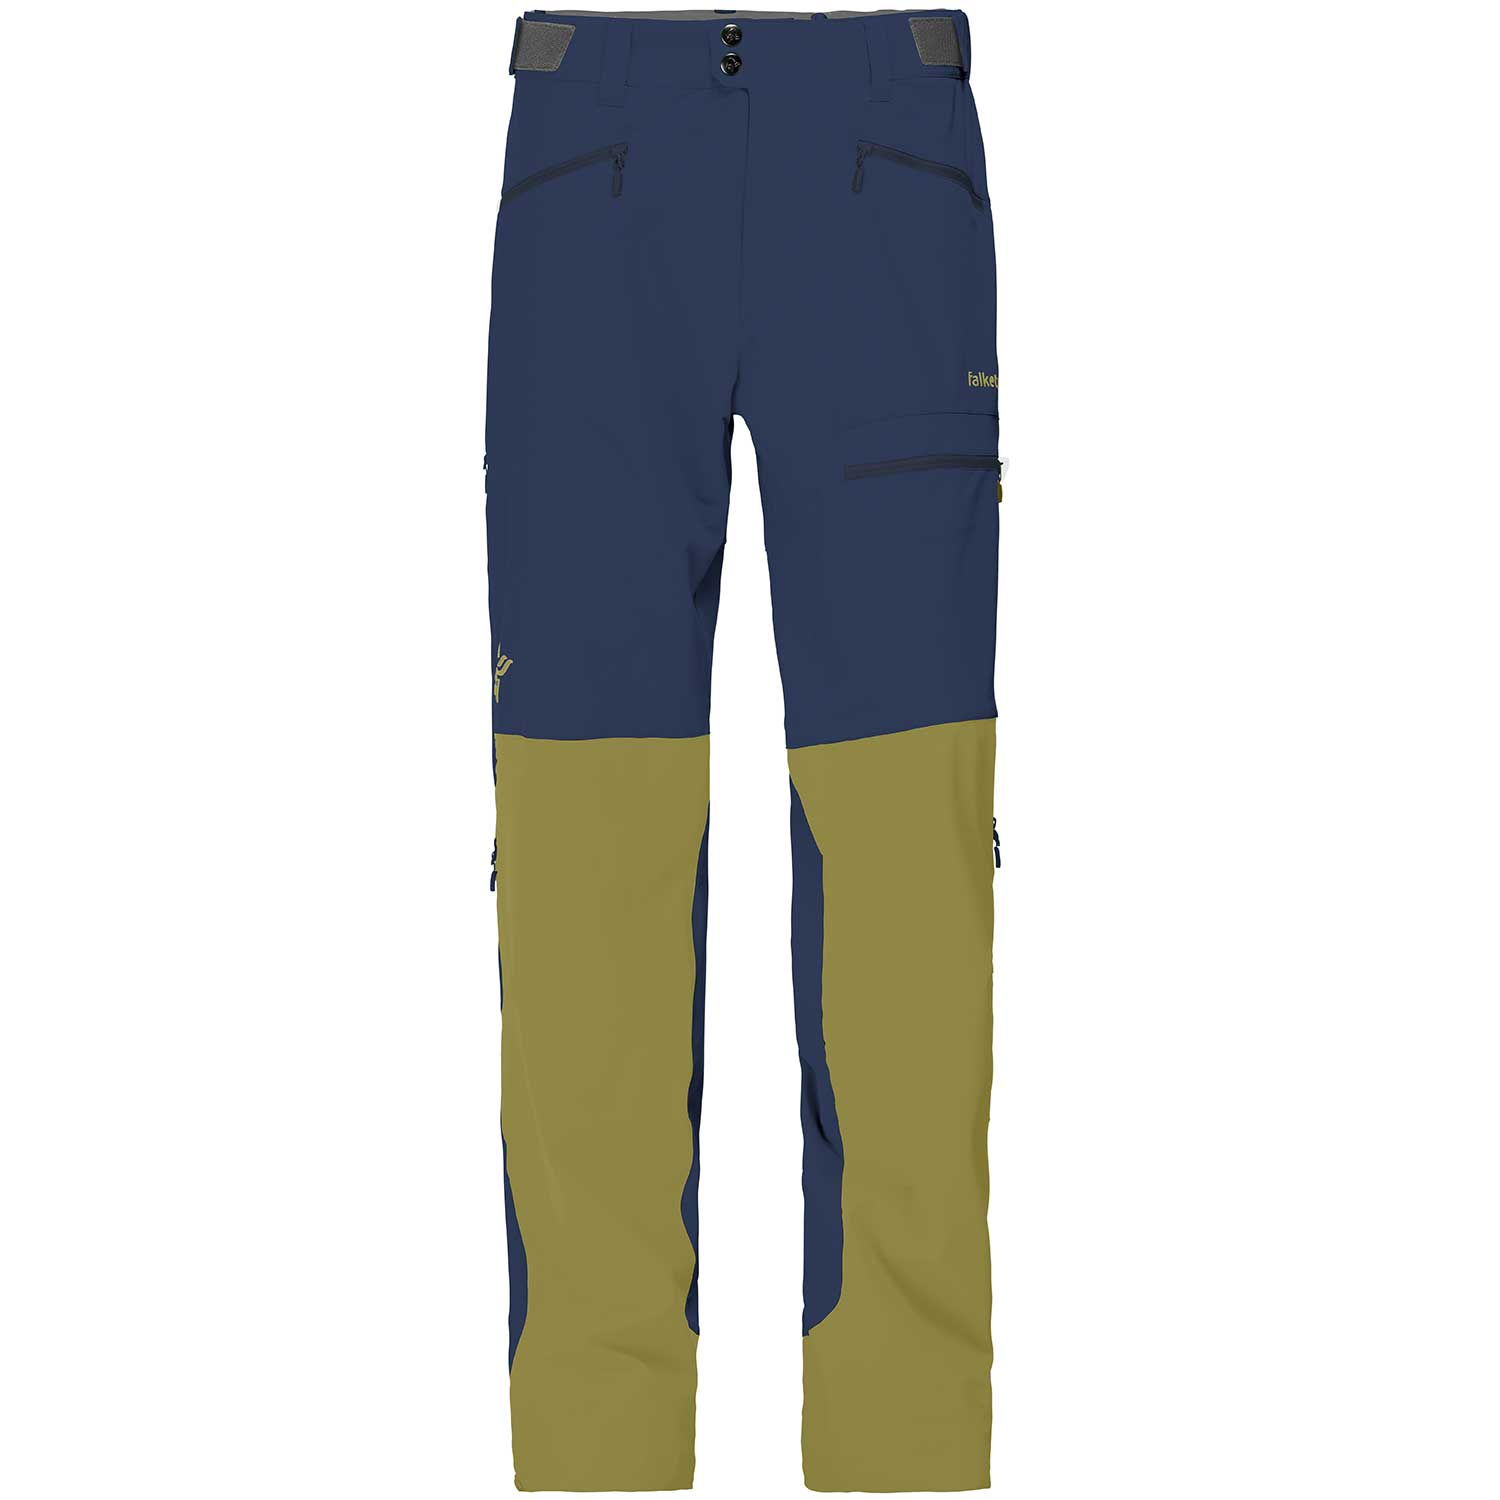 falketind Windstopper hybrid Pants (M)